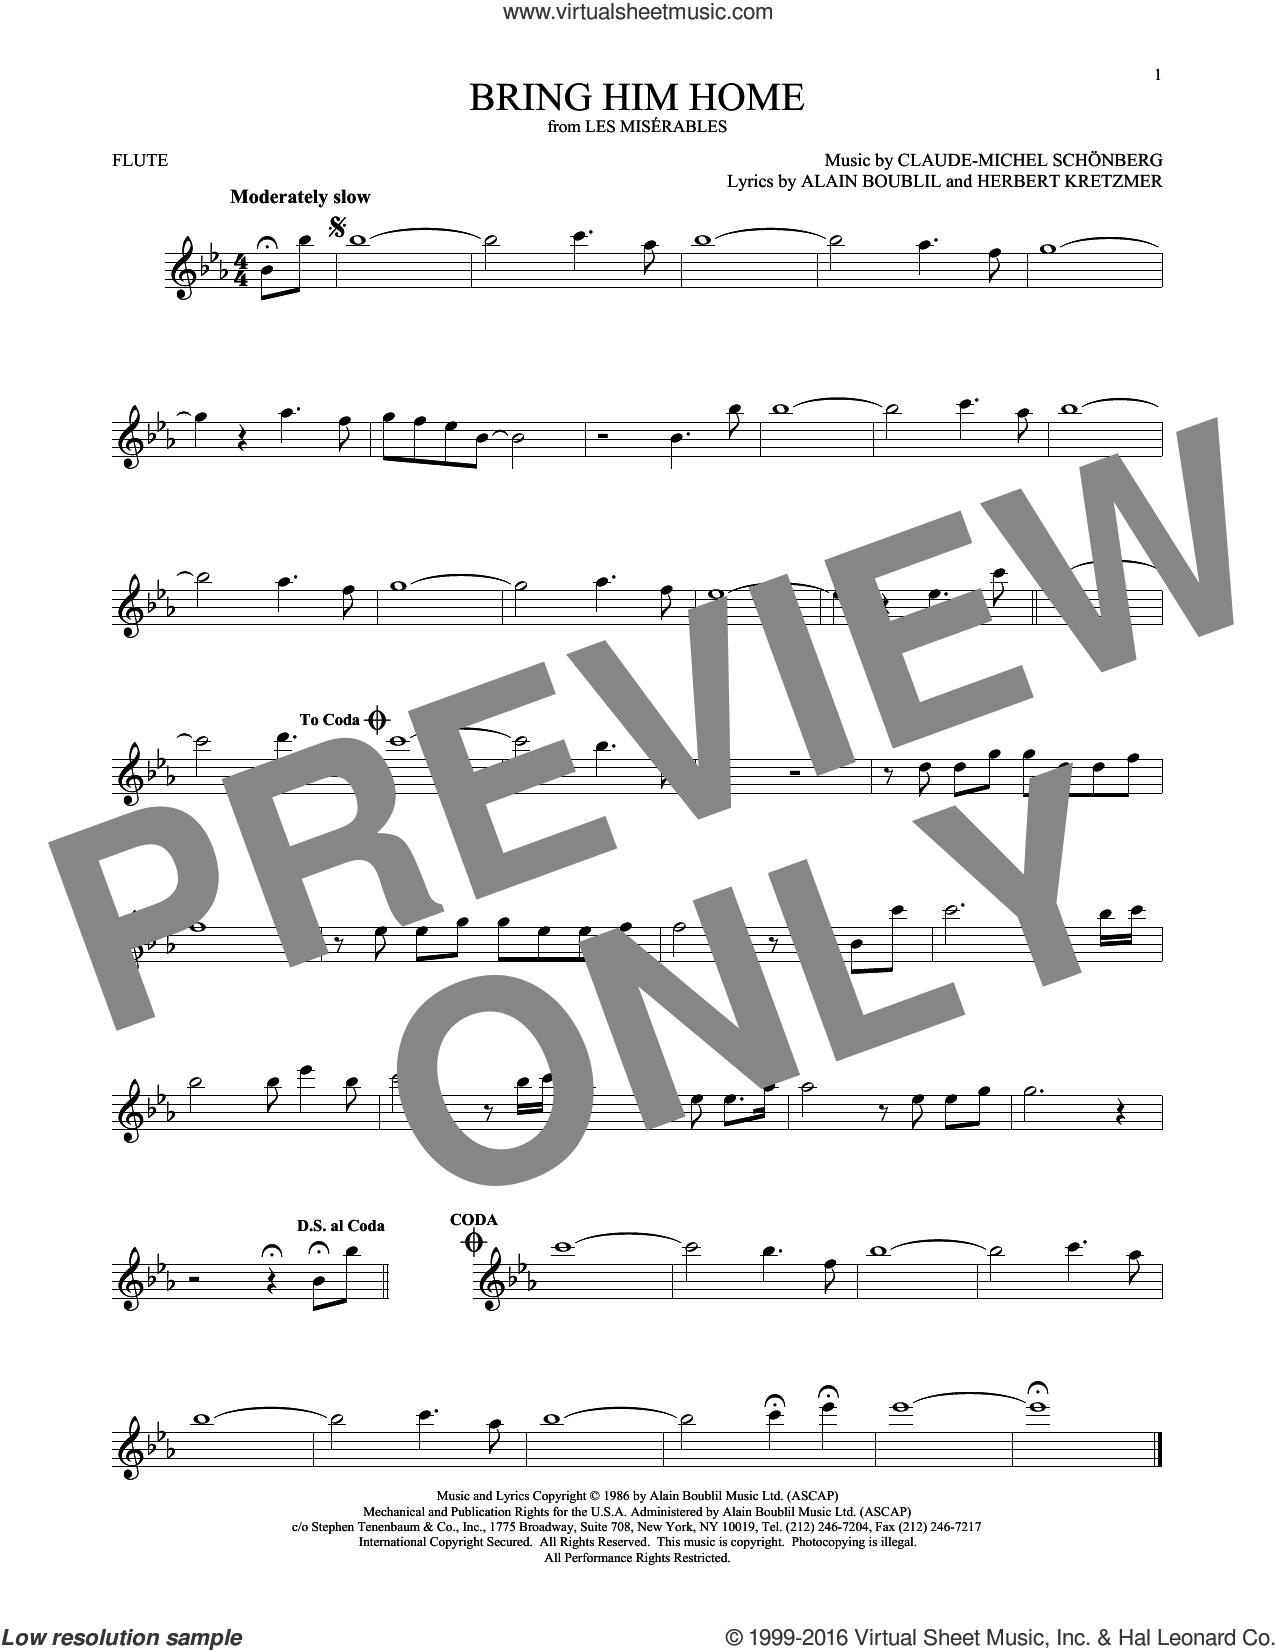 Bring Him Home sheet music for flute solo by Alain Boublil, Claude-Michel Schonberg and Herbert Kretzmer, intermediate skill level